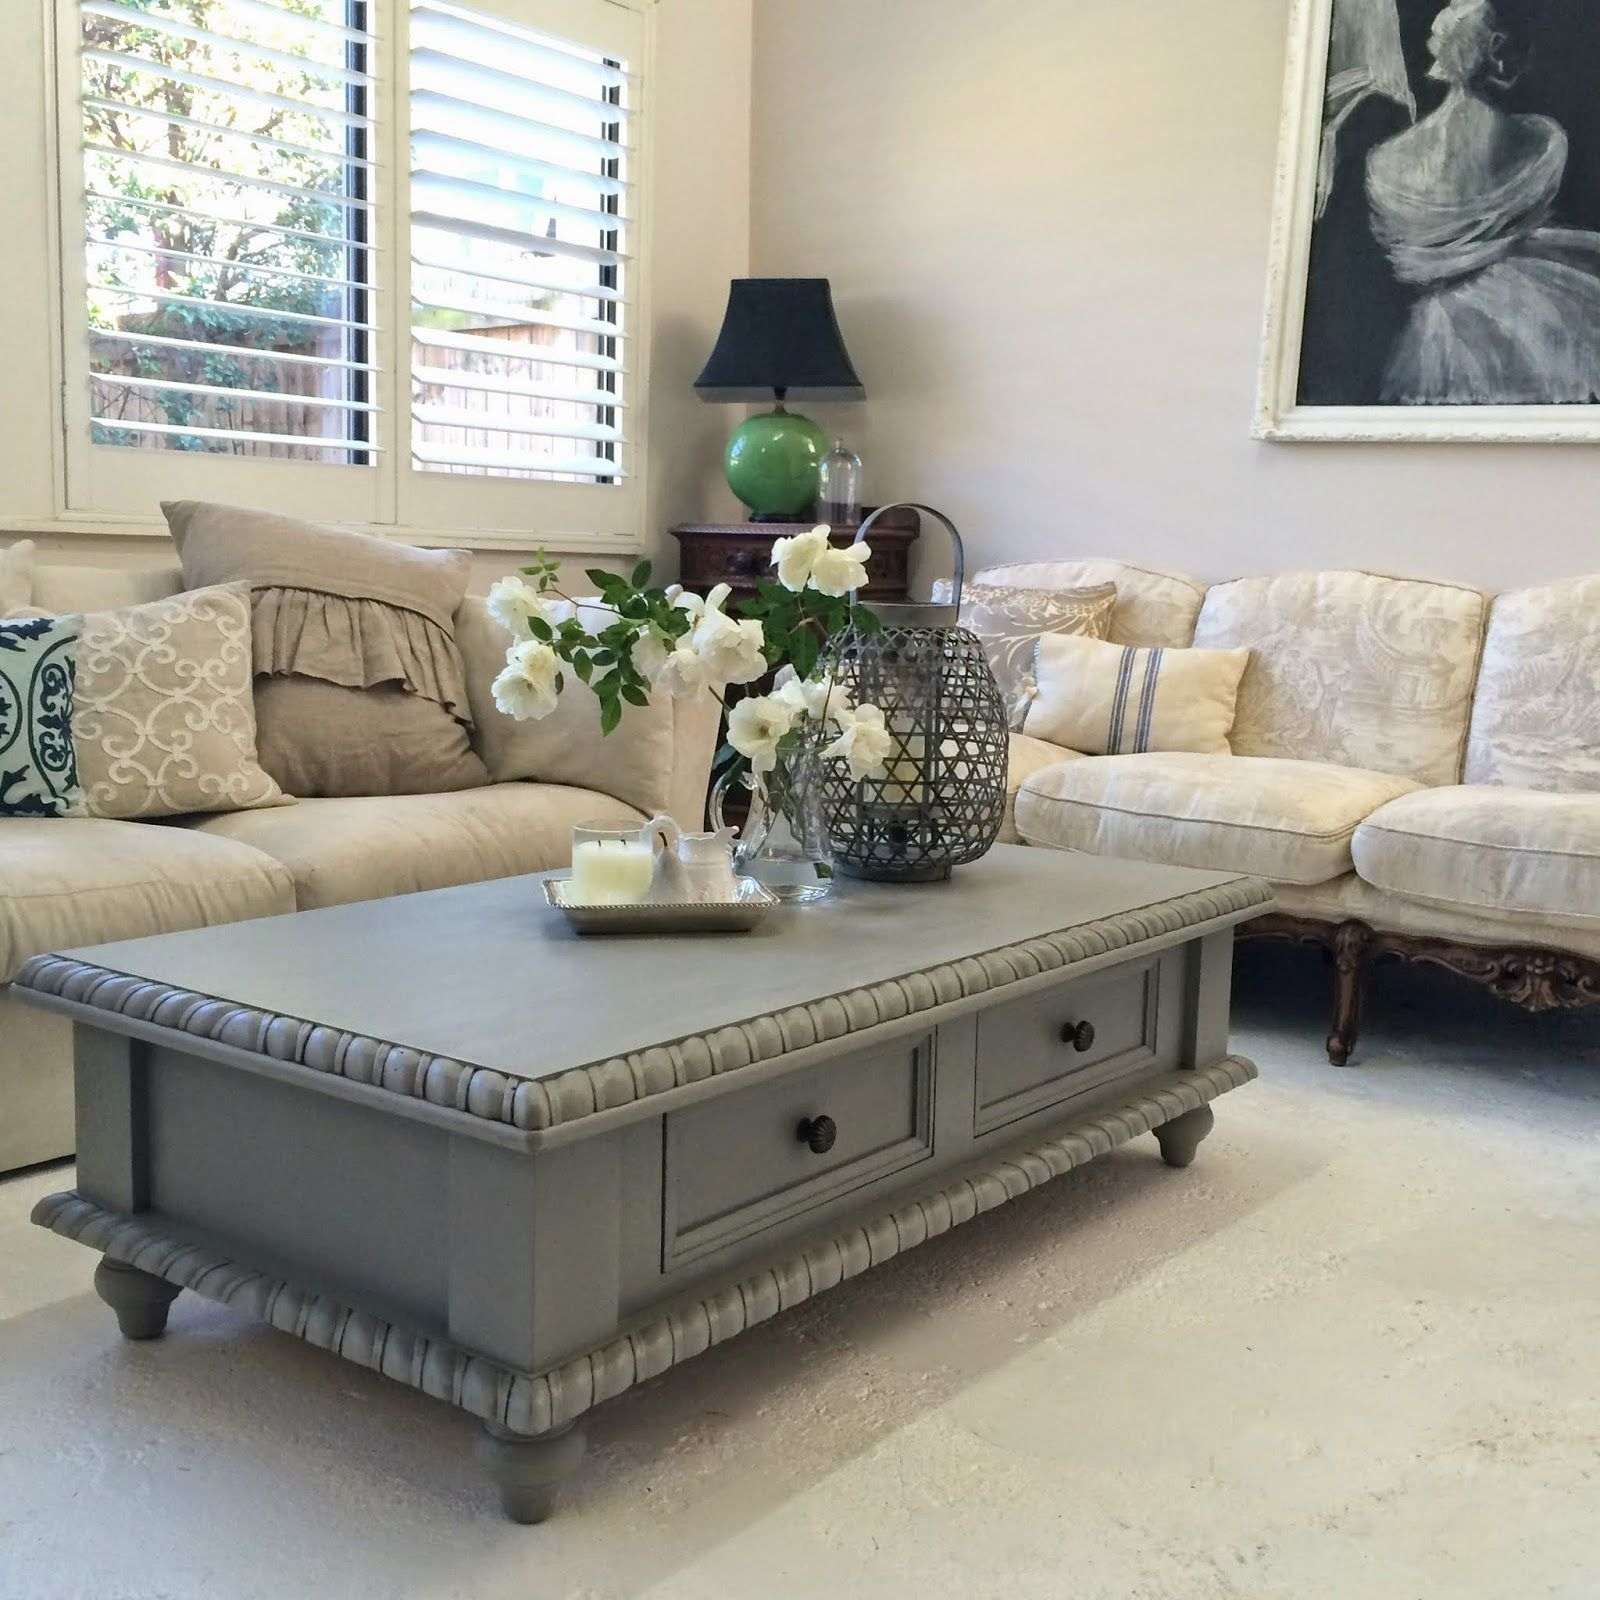 Pine Coffee Table Makeover (View 20 of 20)